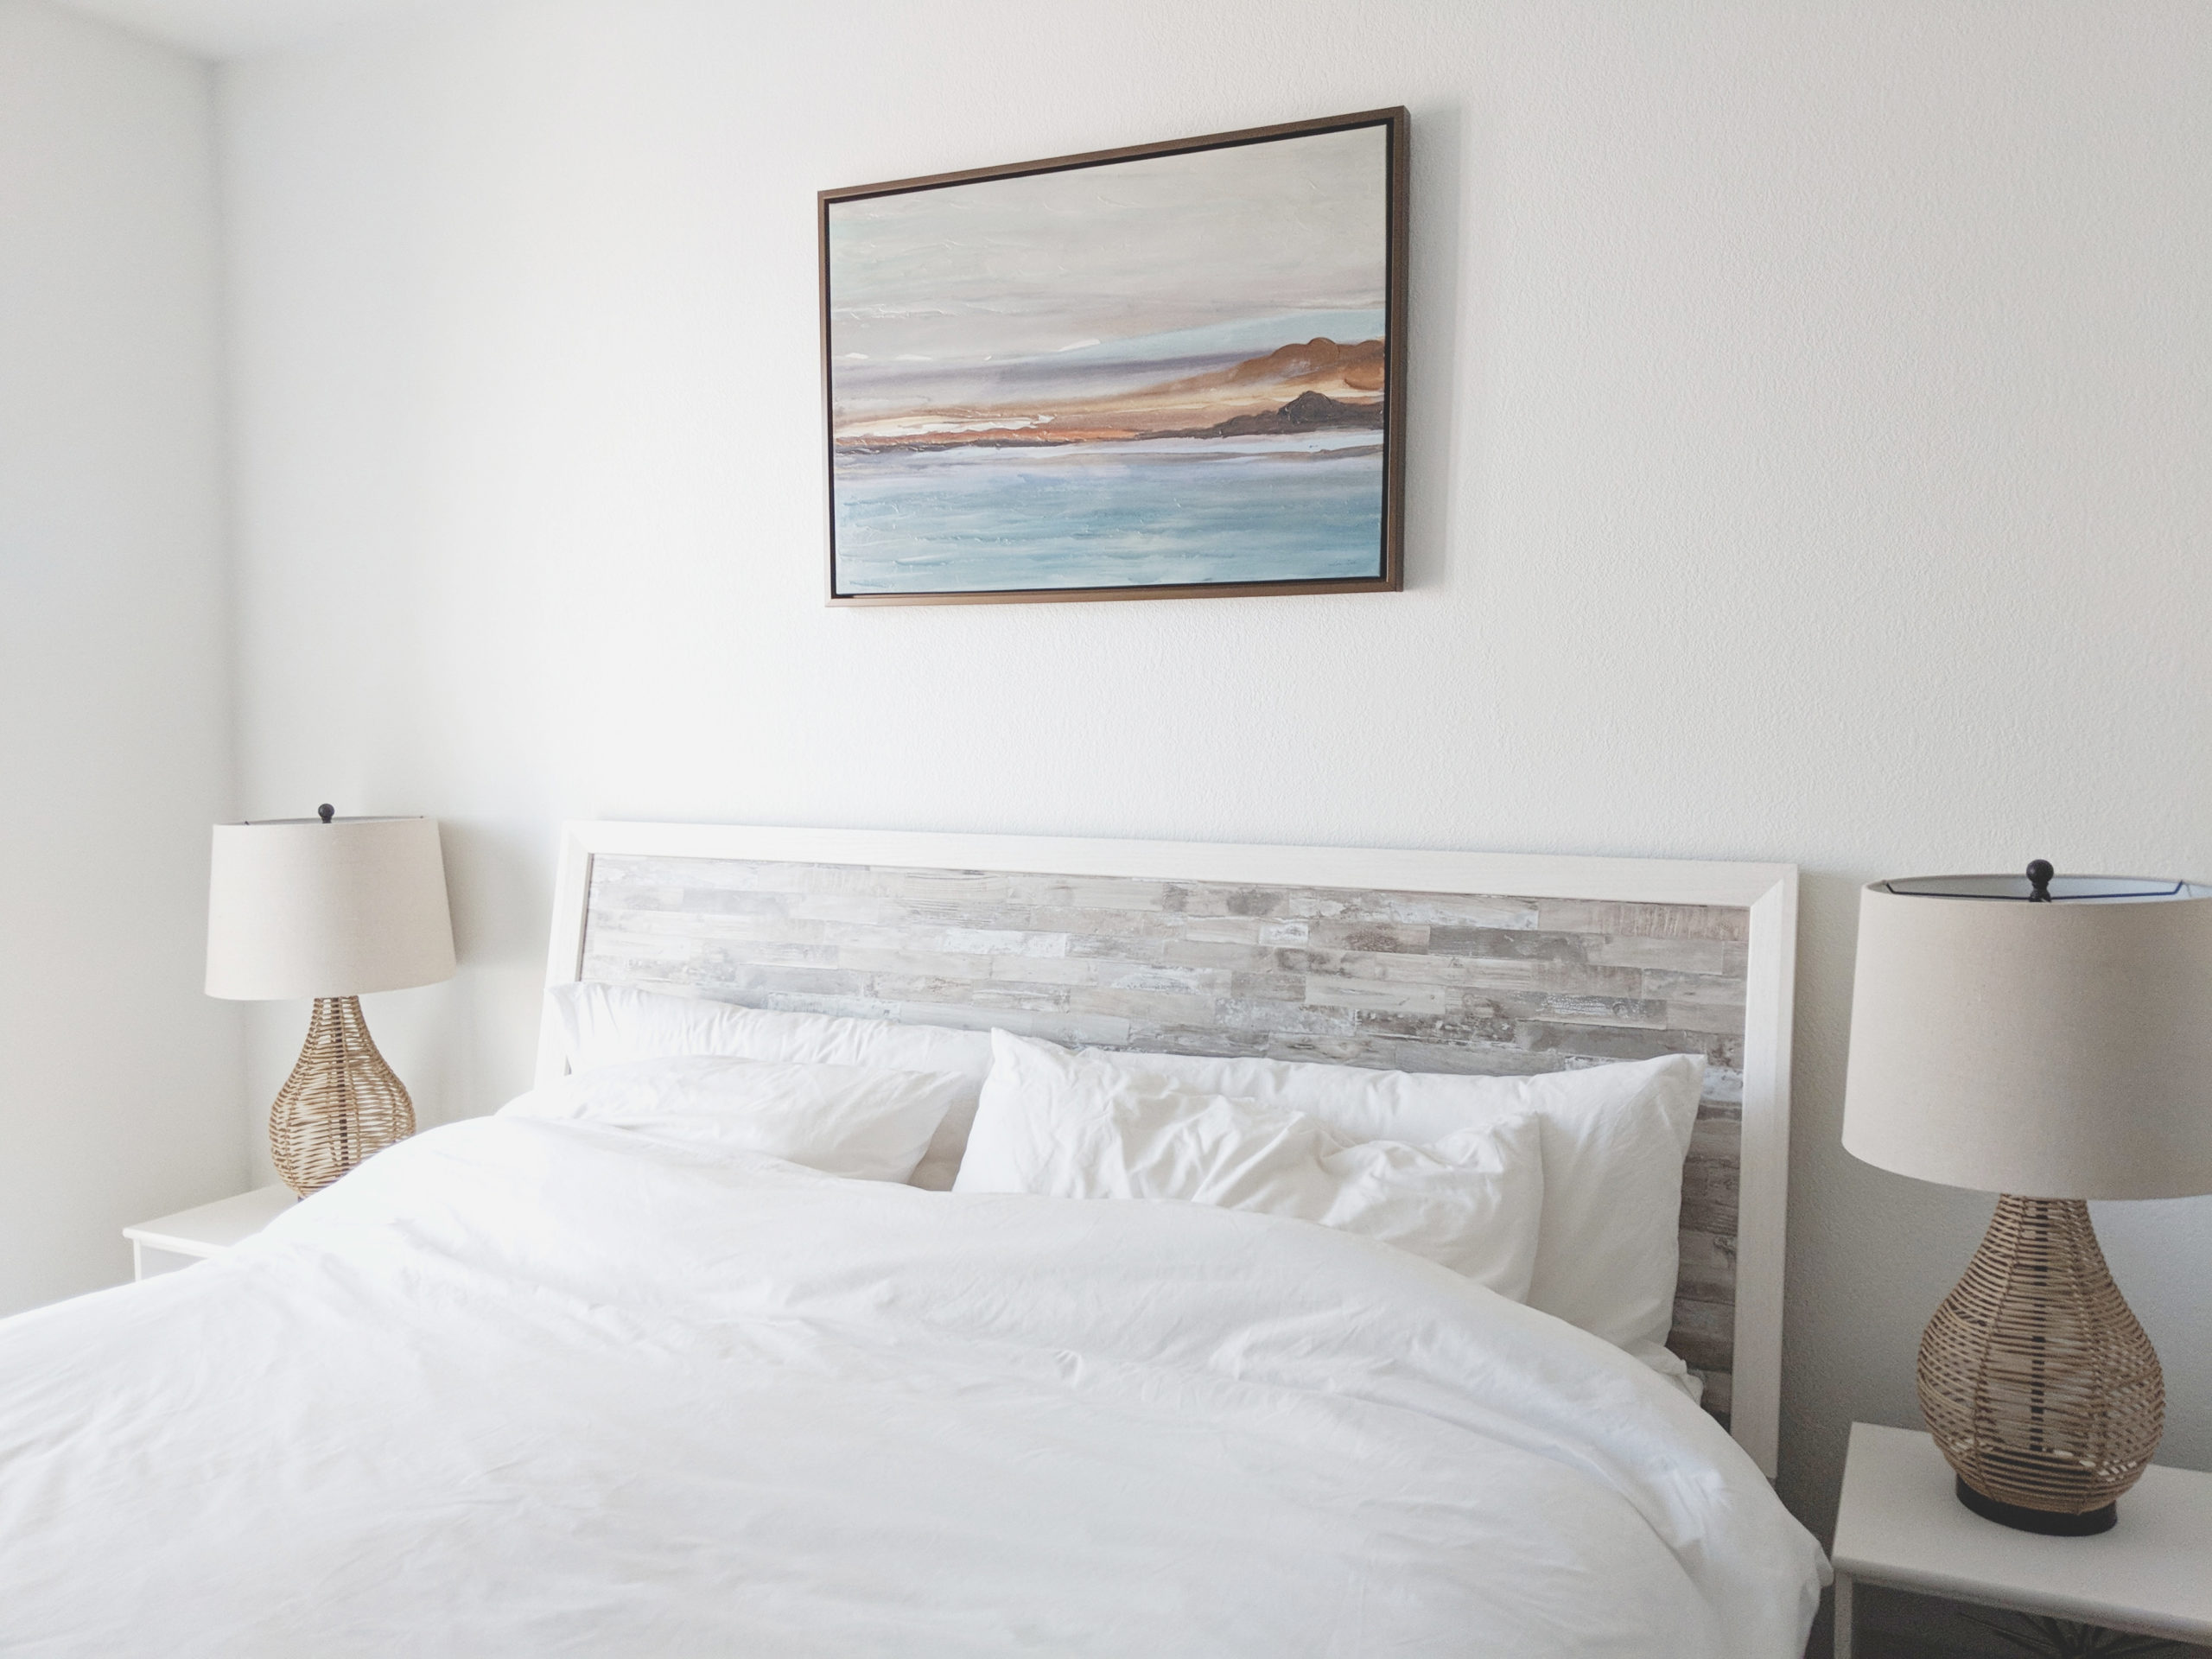 Bed with white bedding in between white bedside tables lamps